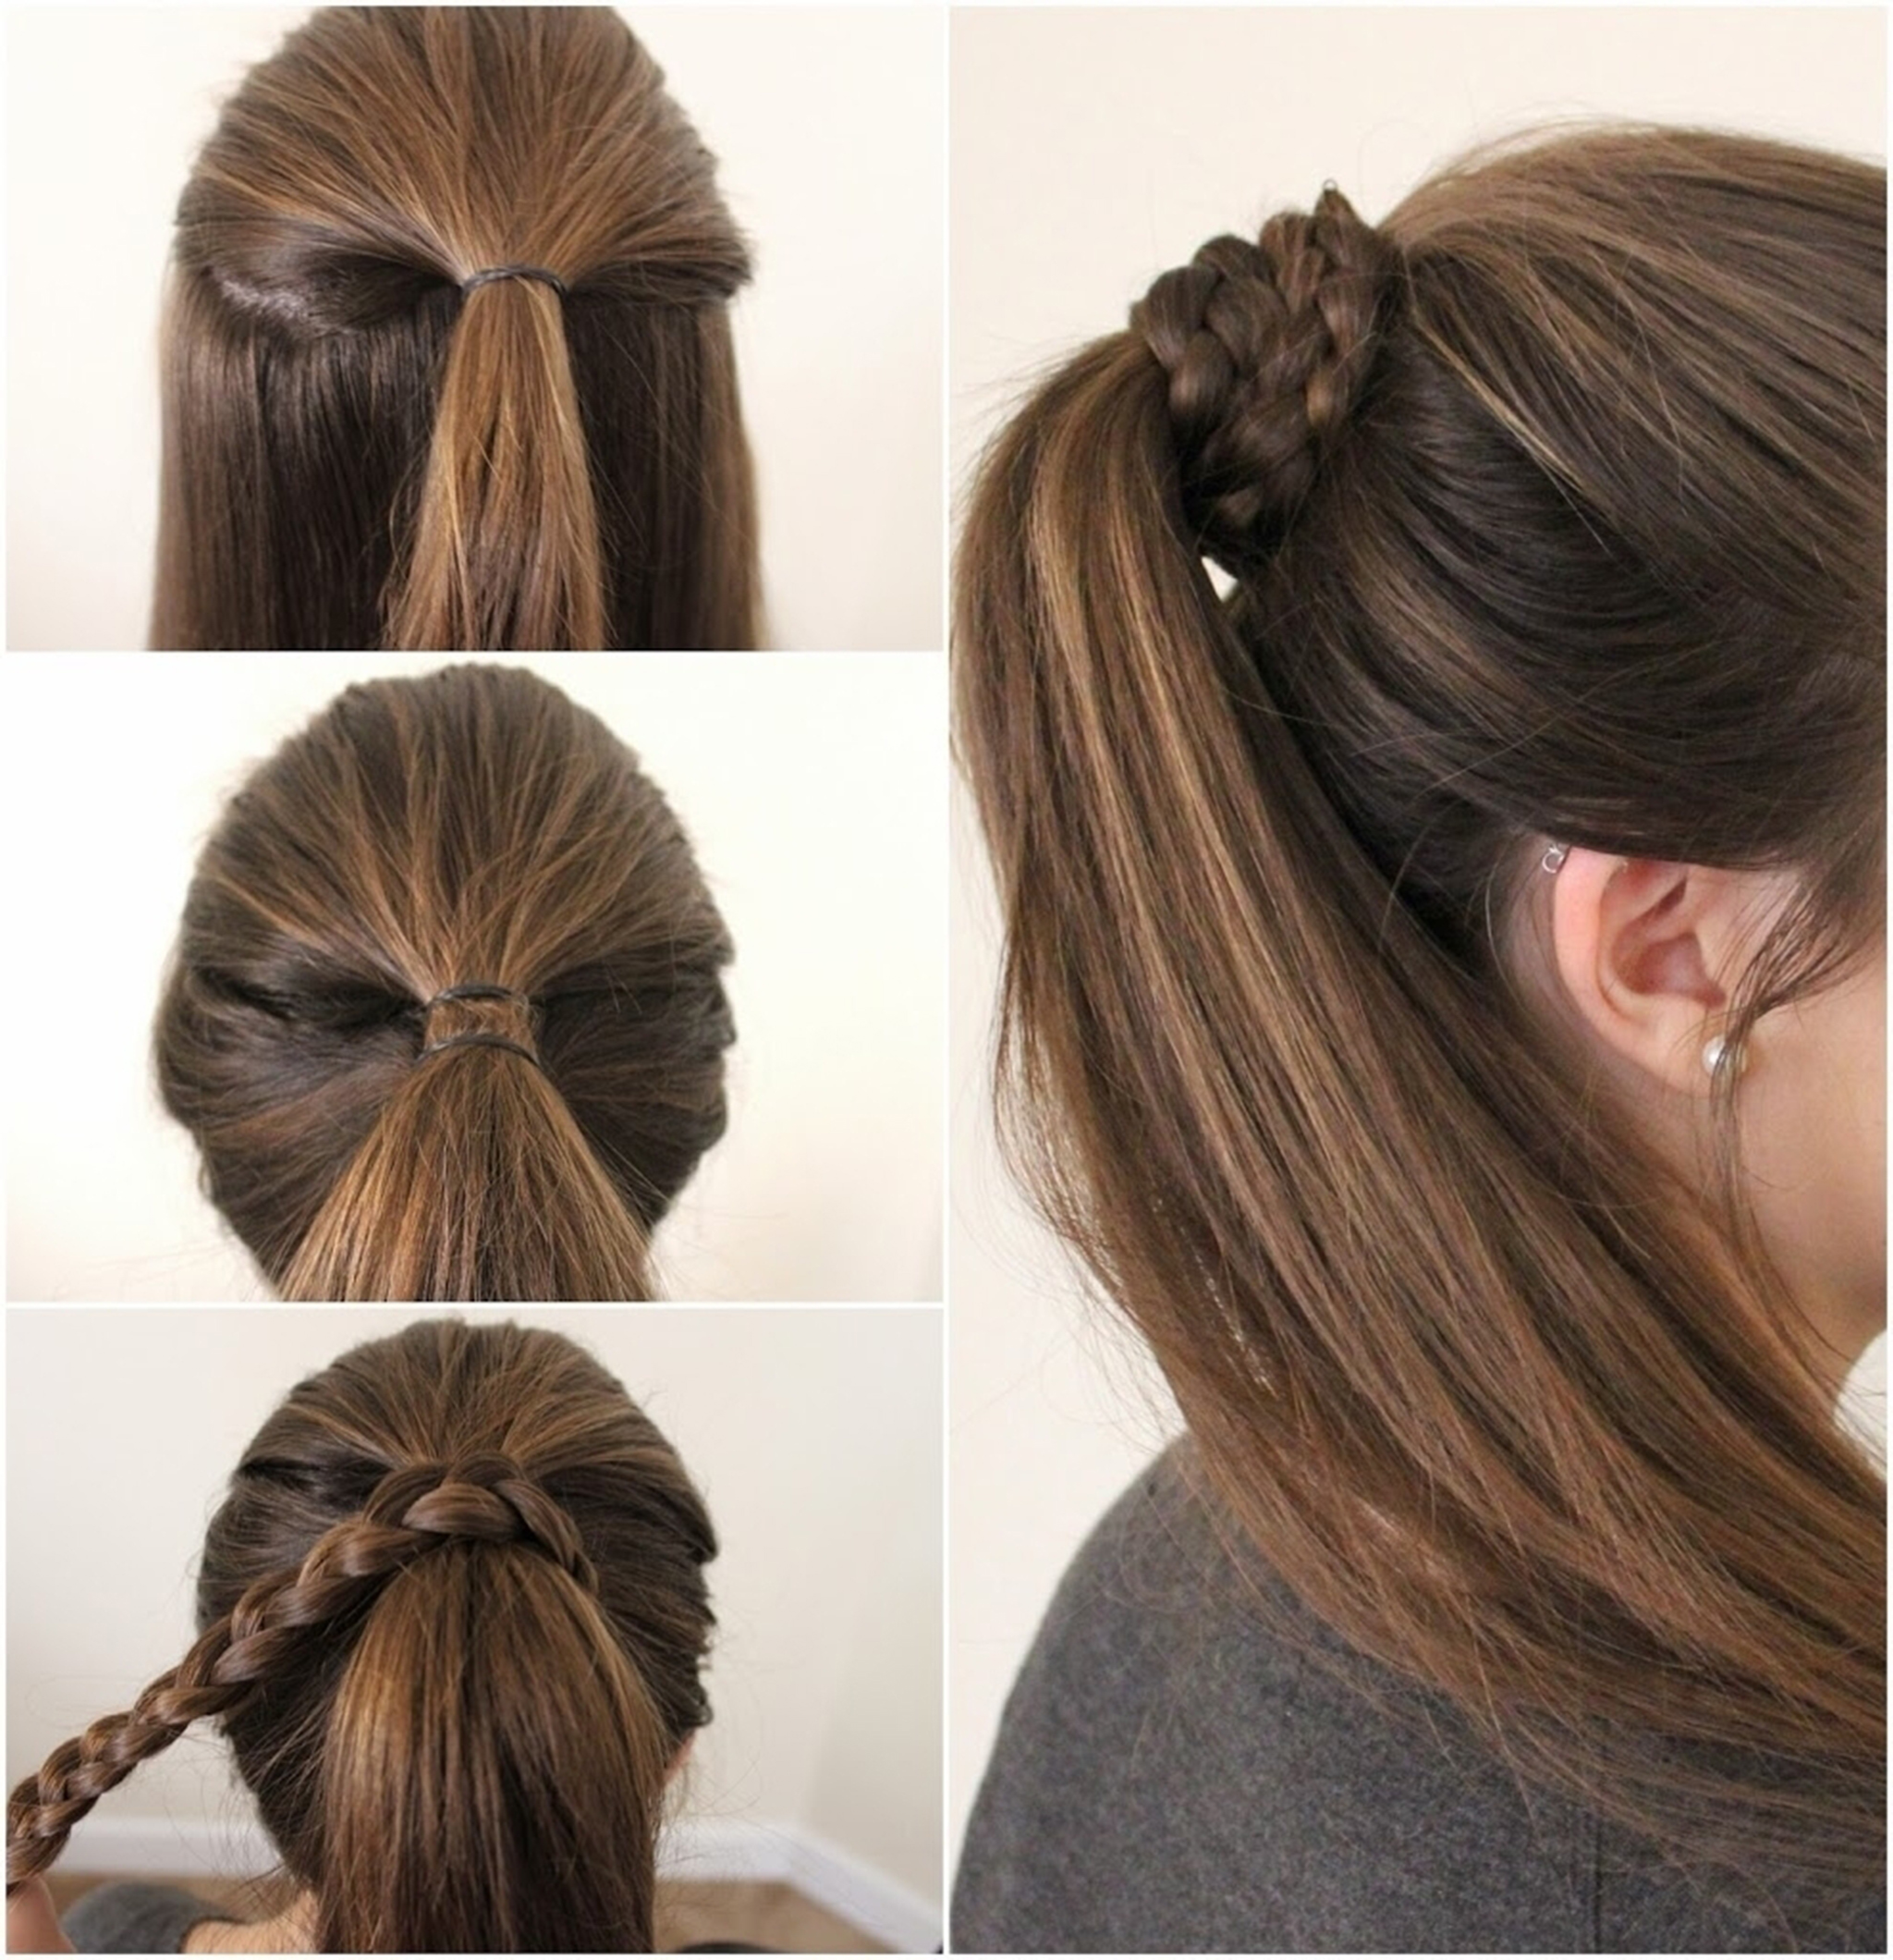 Simple Hairstyles For Girls New Simple Hairstyle For Girls Step - Gymbuddy Now